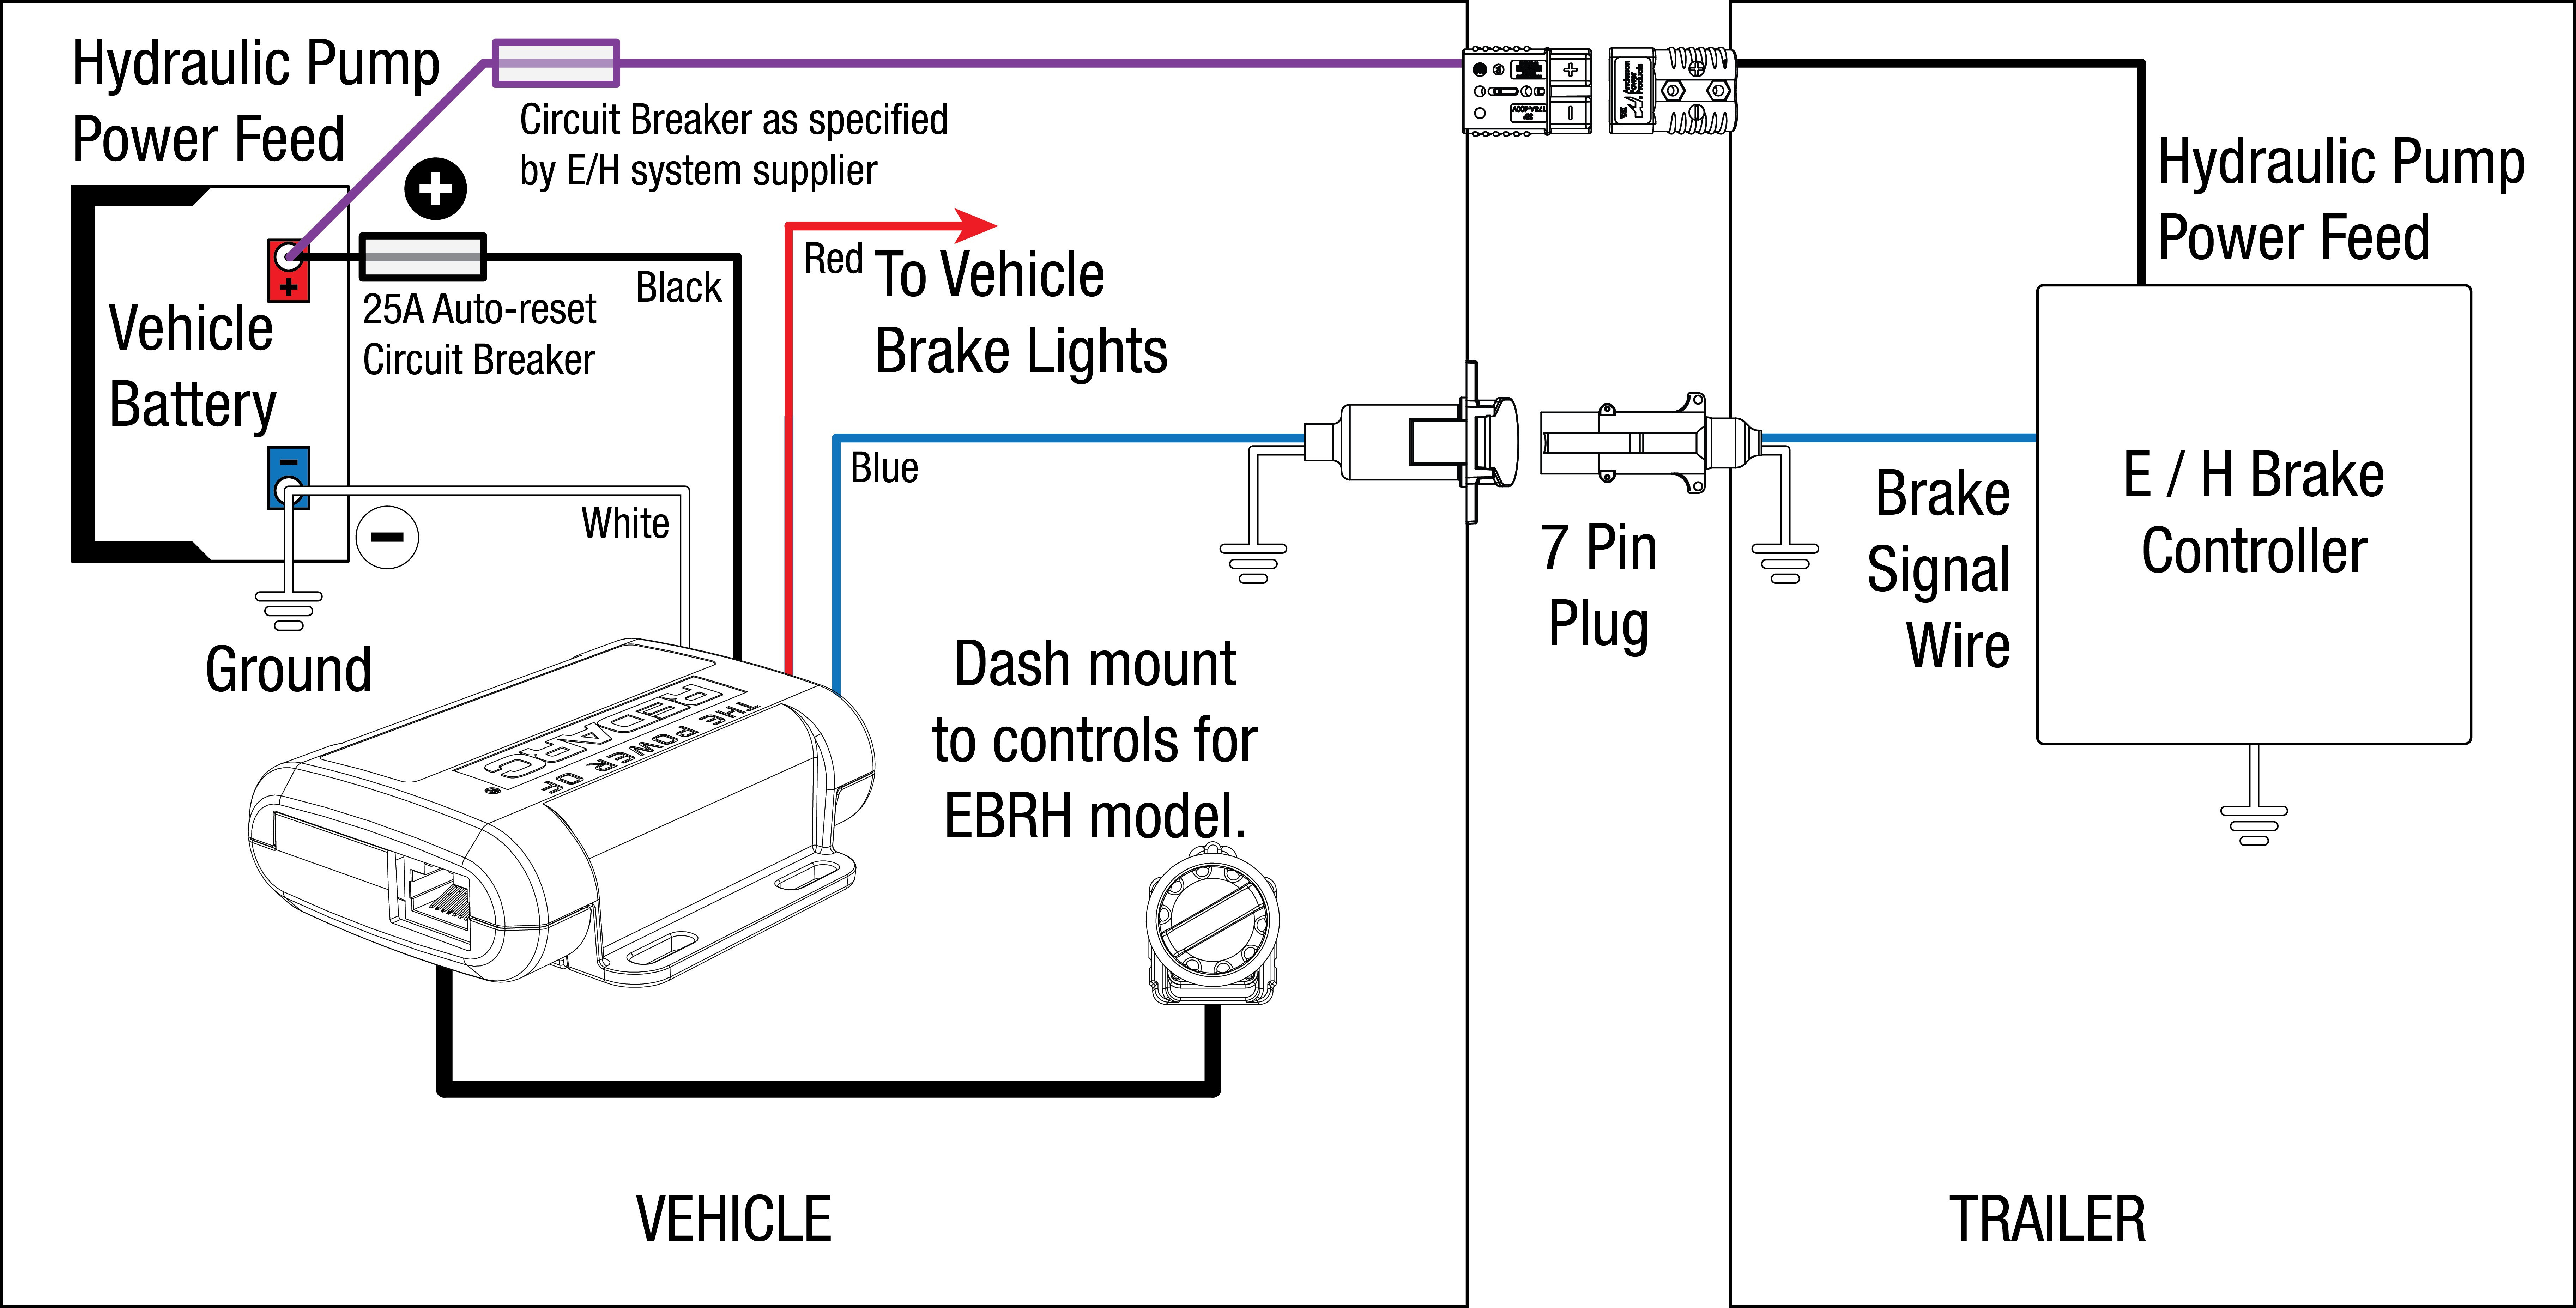 Trailer Brake Breakaway Wiring Diagram | Wiring Library - Trailer Breakaway System Wiring Diagram